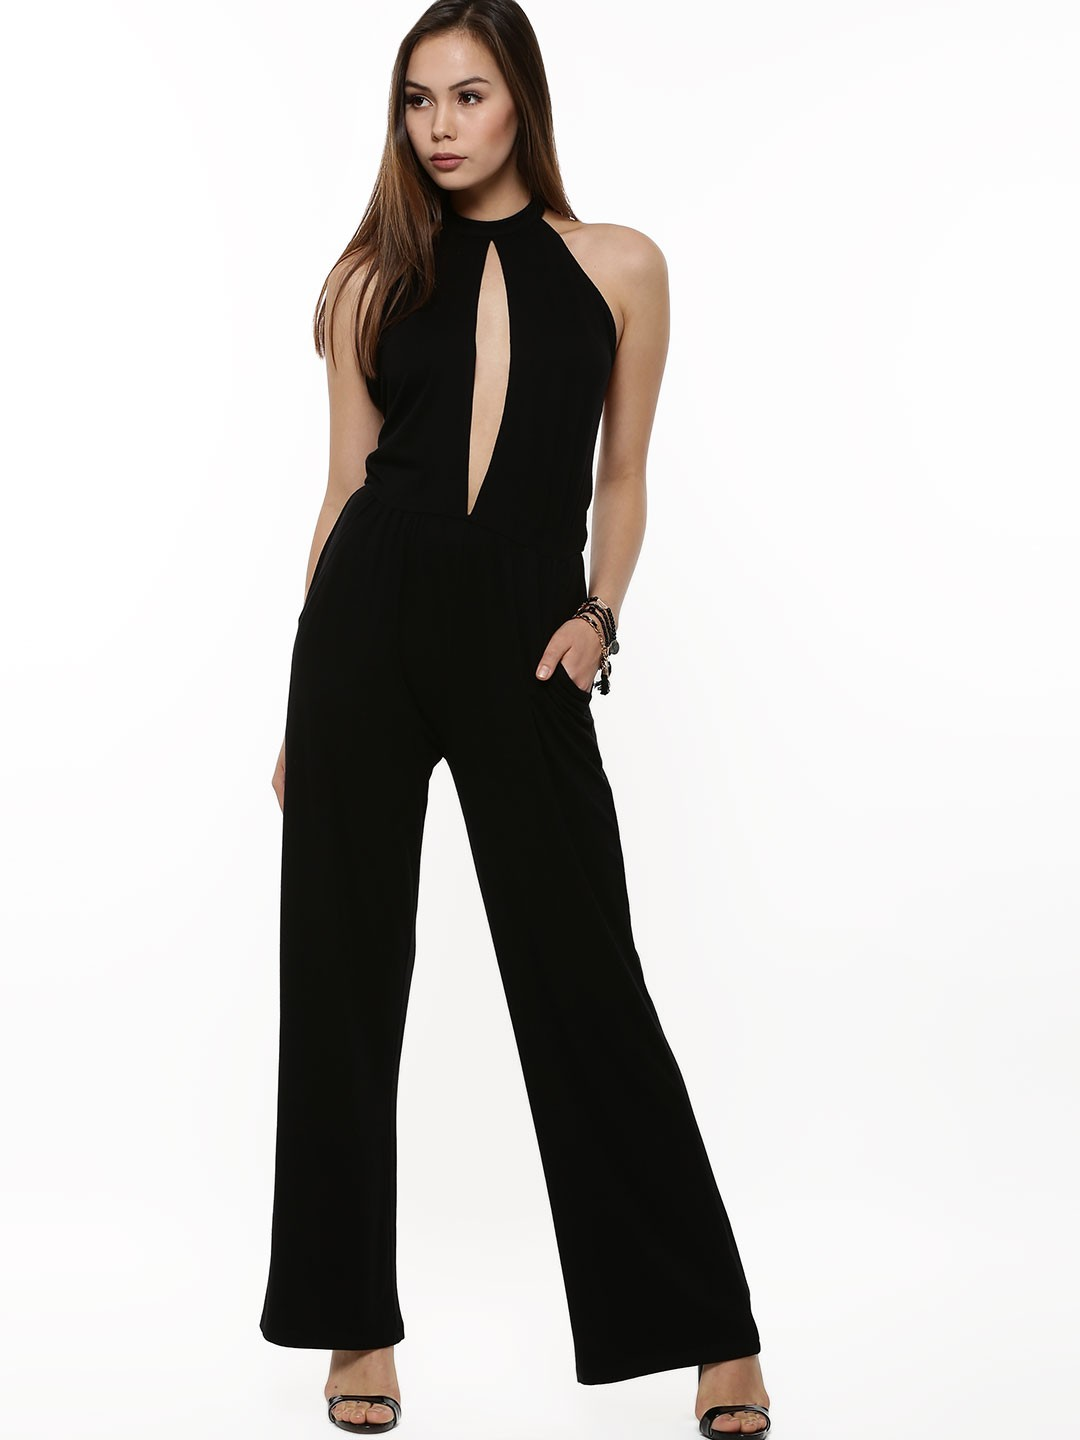 31 Brilliant Jumpsuits For Women Online India U2013 Playzoa.com